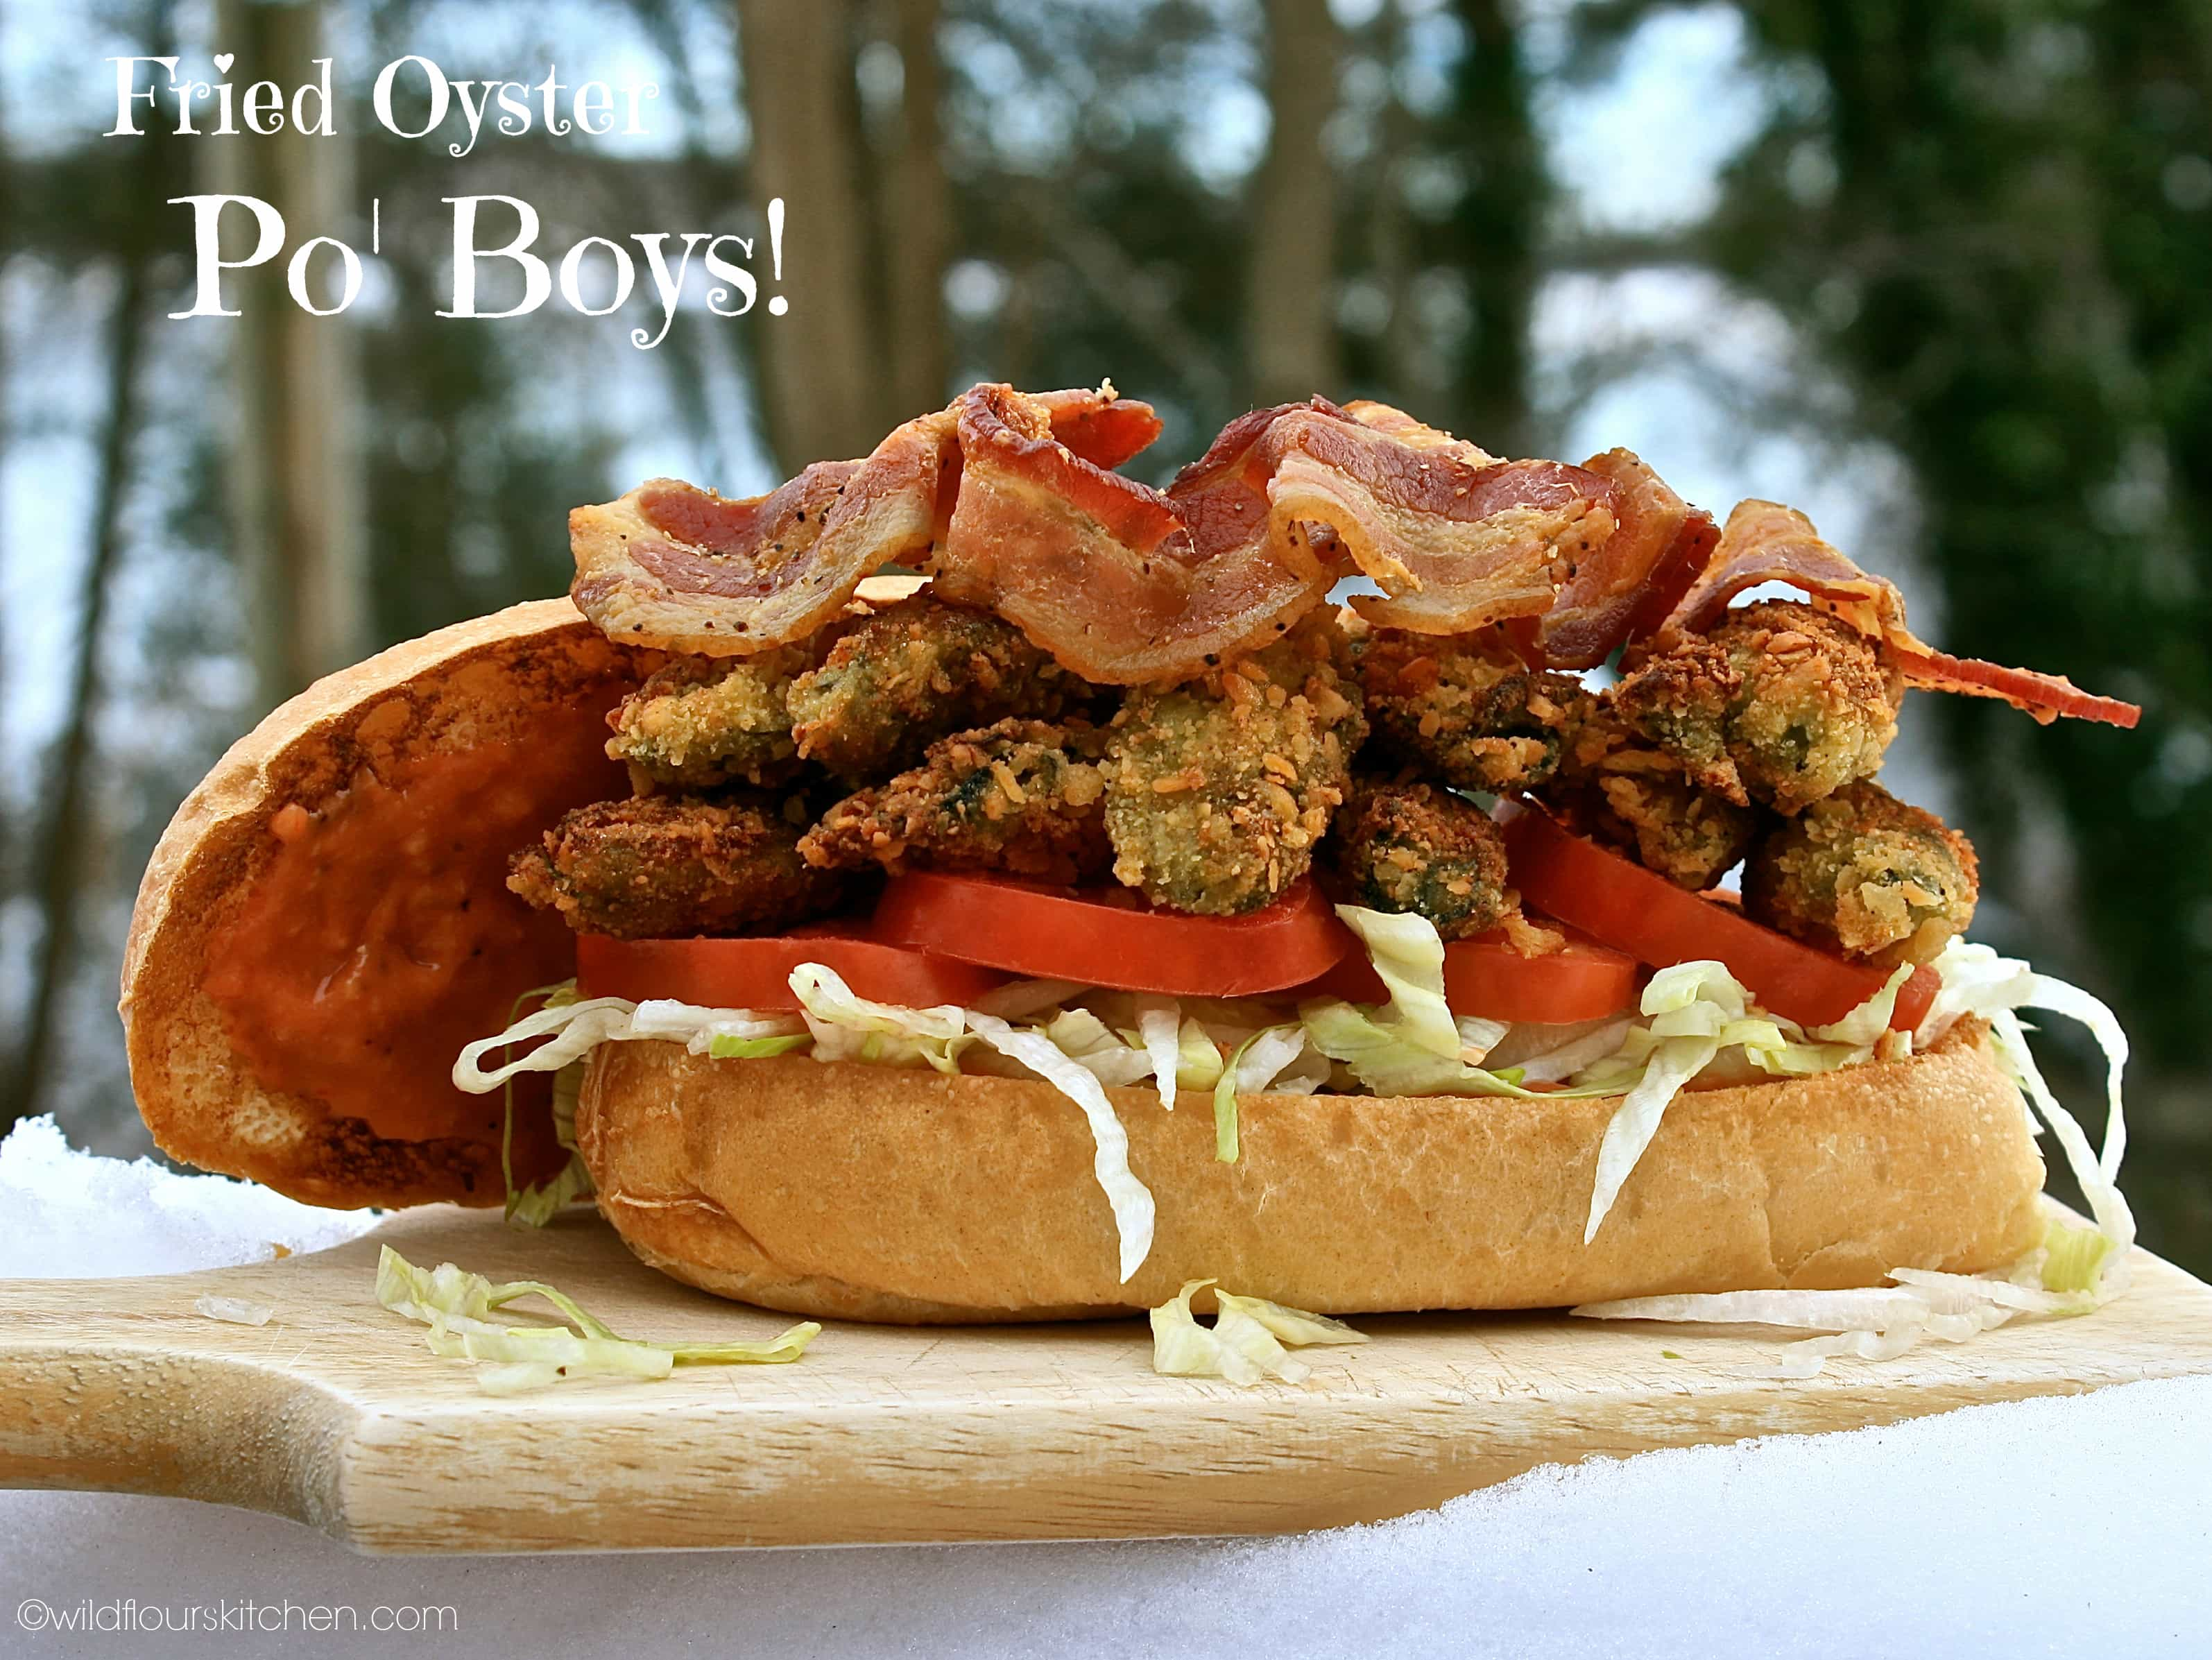 fried oyster po' boy